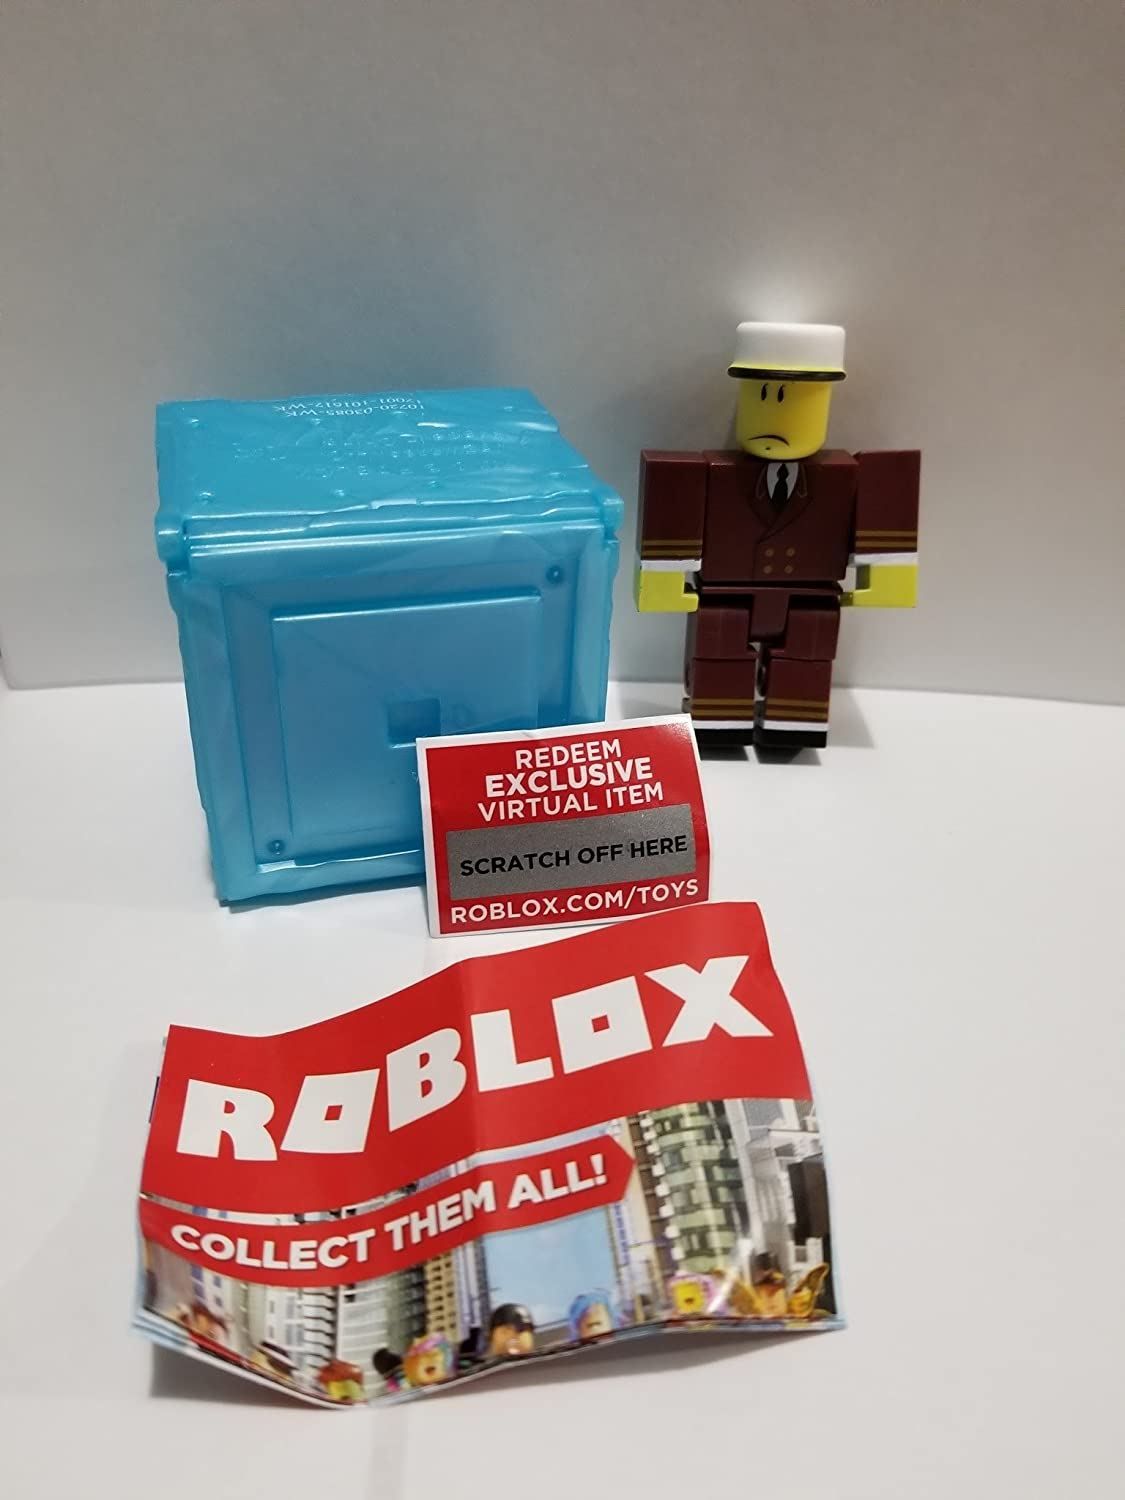 Roblox Series 3 ~TNT Rusher with Unused Virtual Item Code